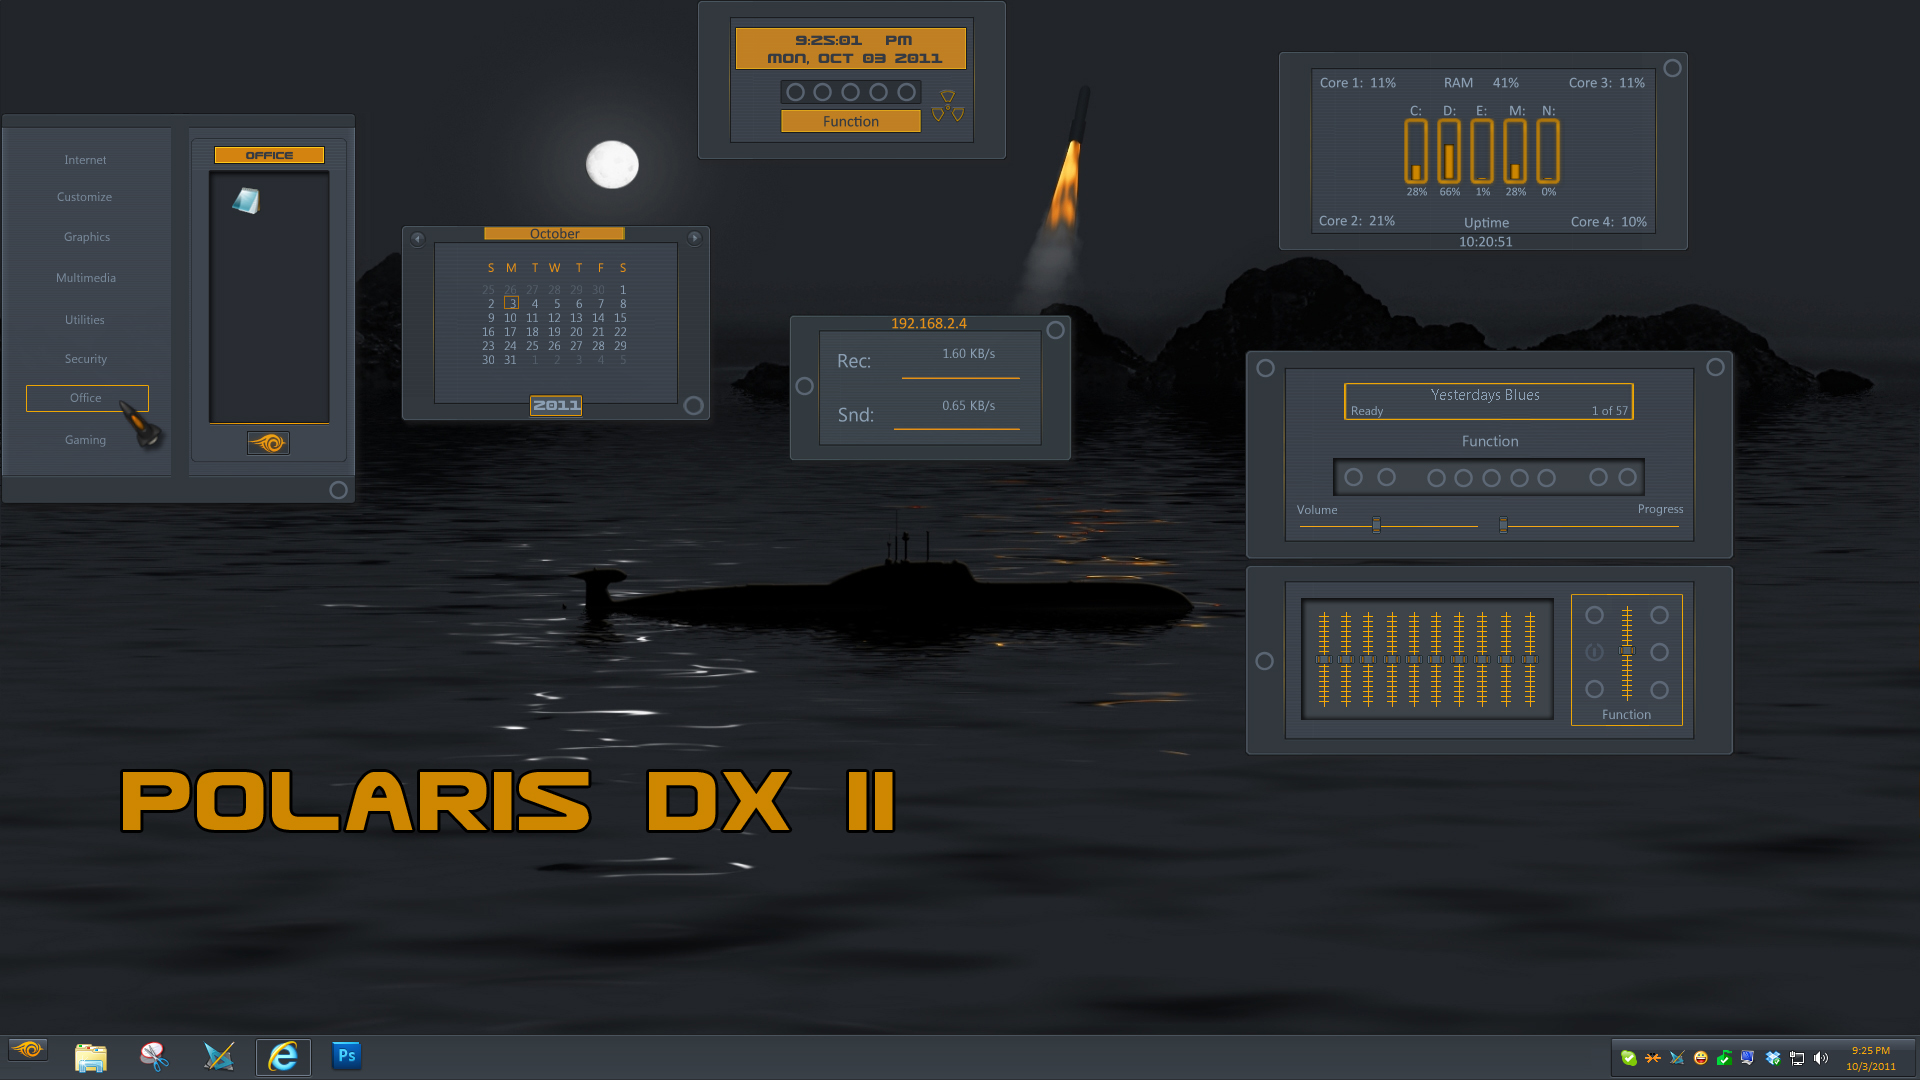 Polaris DX II